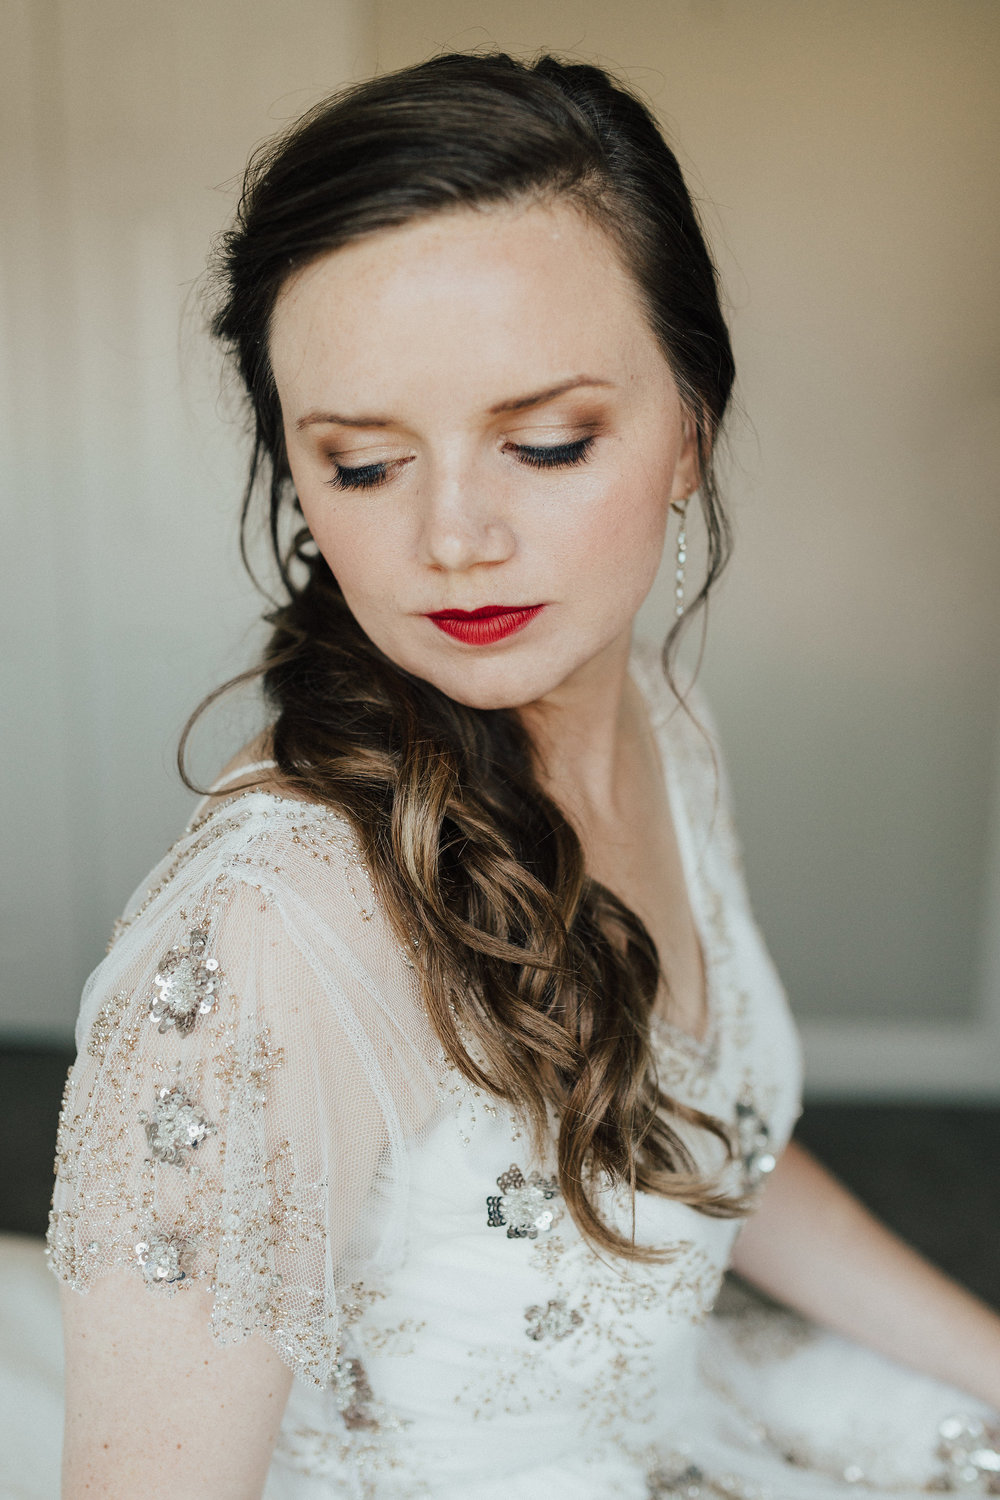 HAIR + MAKEUP: Harley Ann Artistry | PHOTO: The Shepard Photo